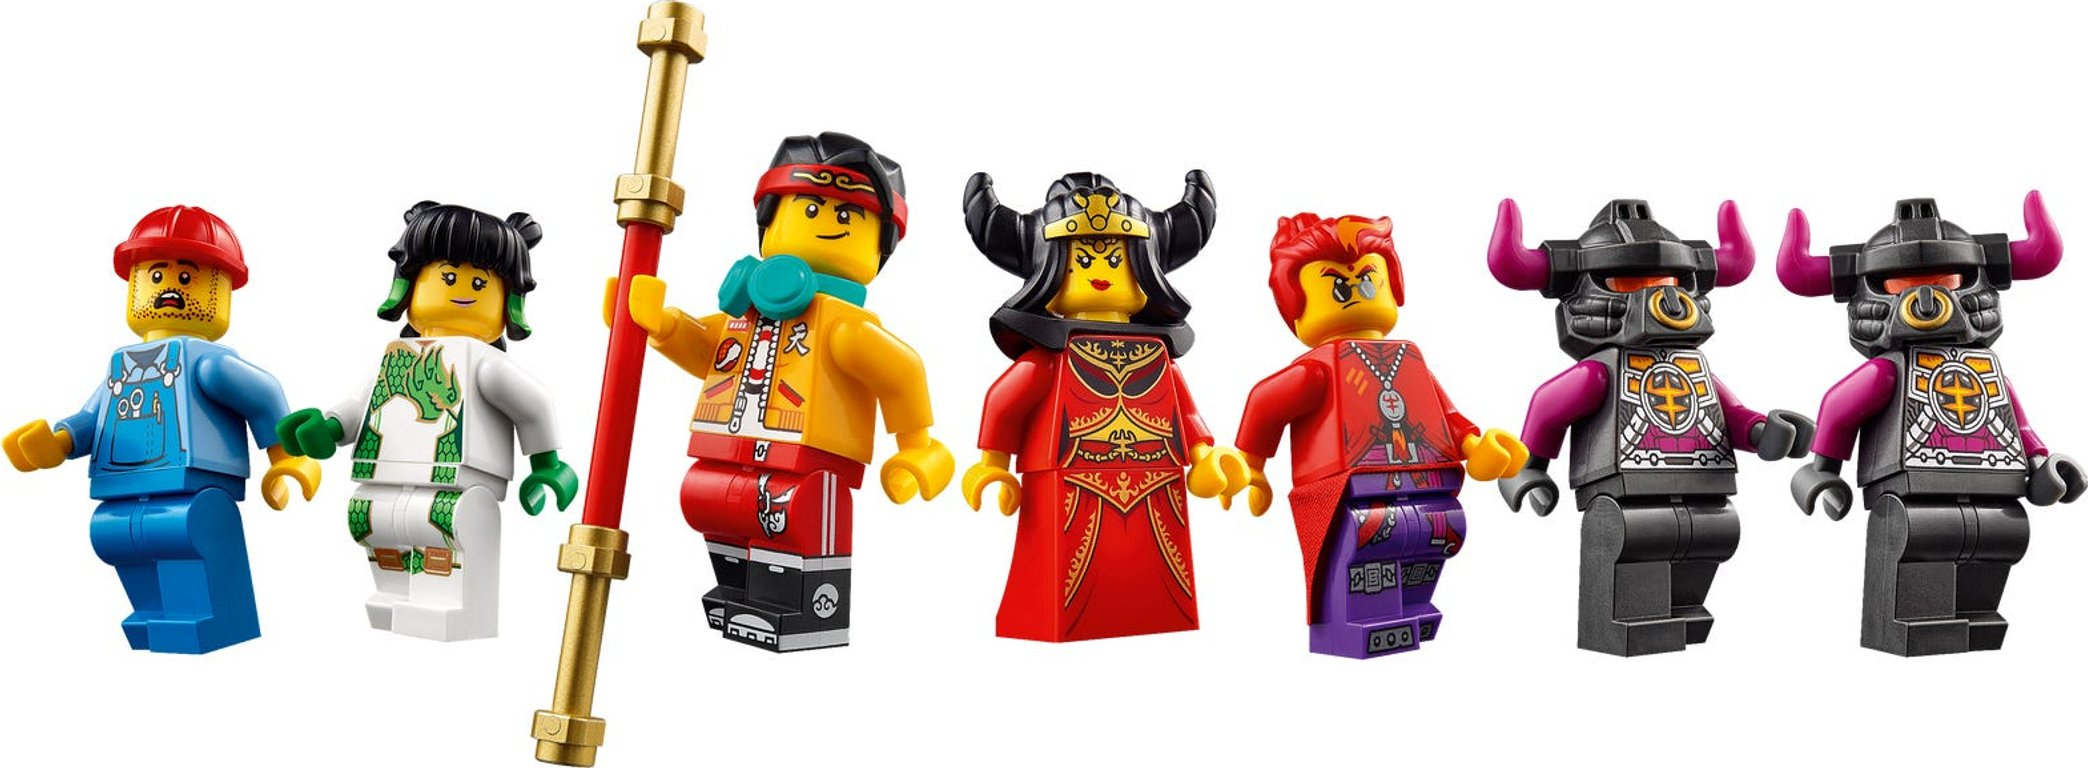 LEGO® Monkie Kid The Flaming Foundry minifigures